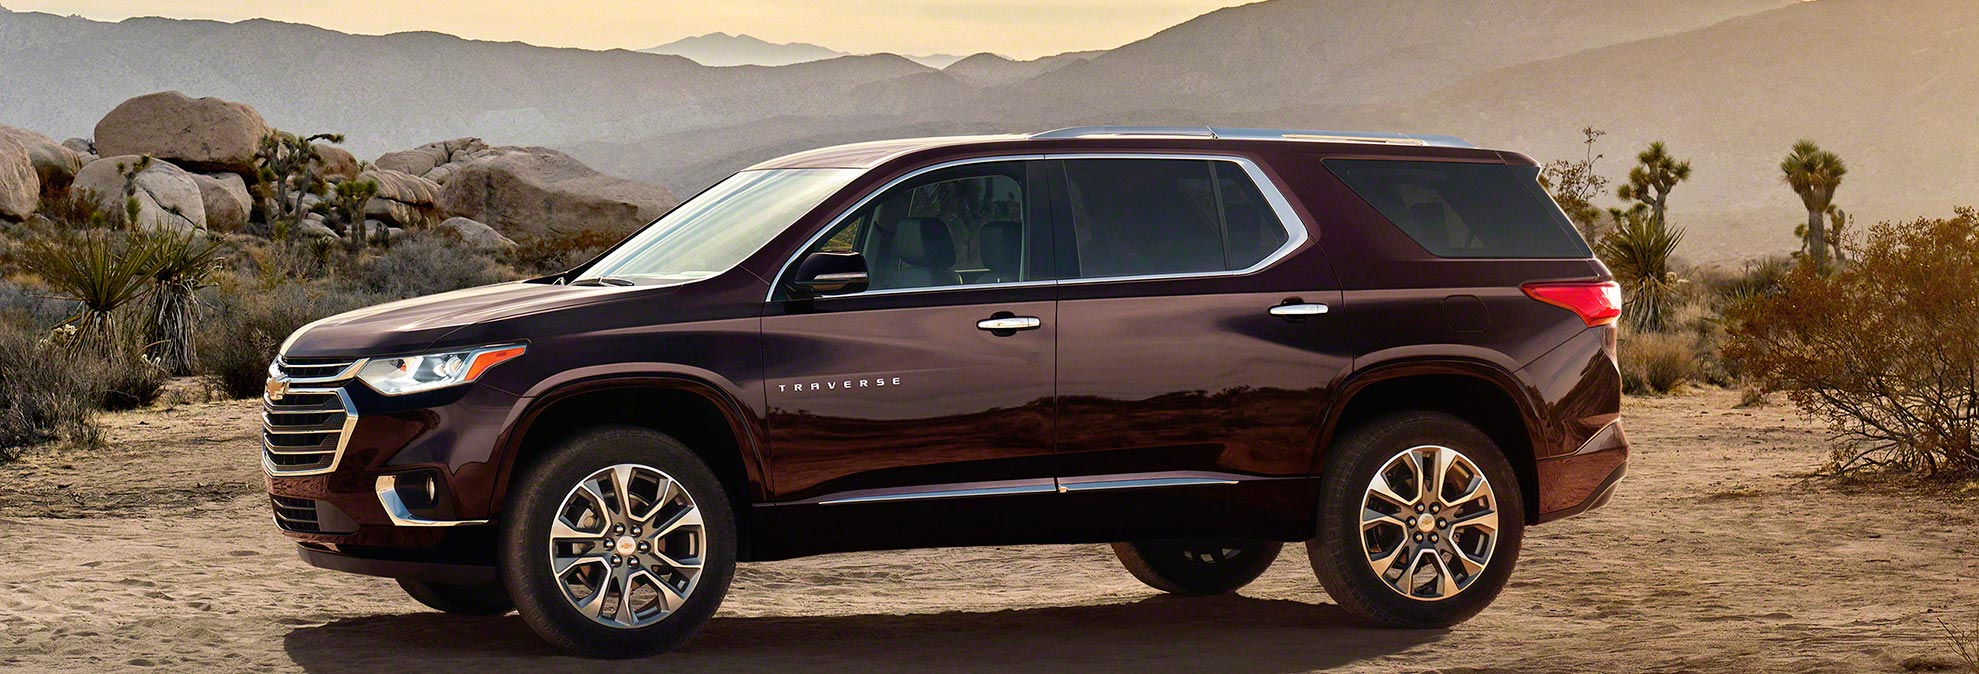 2018 chevrolet traverse preview consumer reports. Black Bedroom Furniture Sets. Home Design Ideas